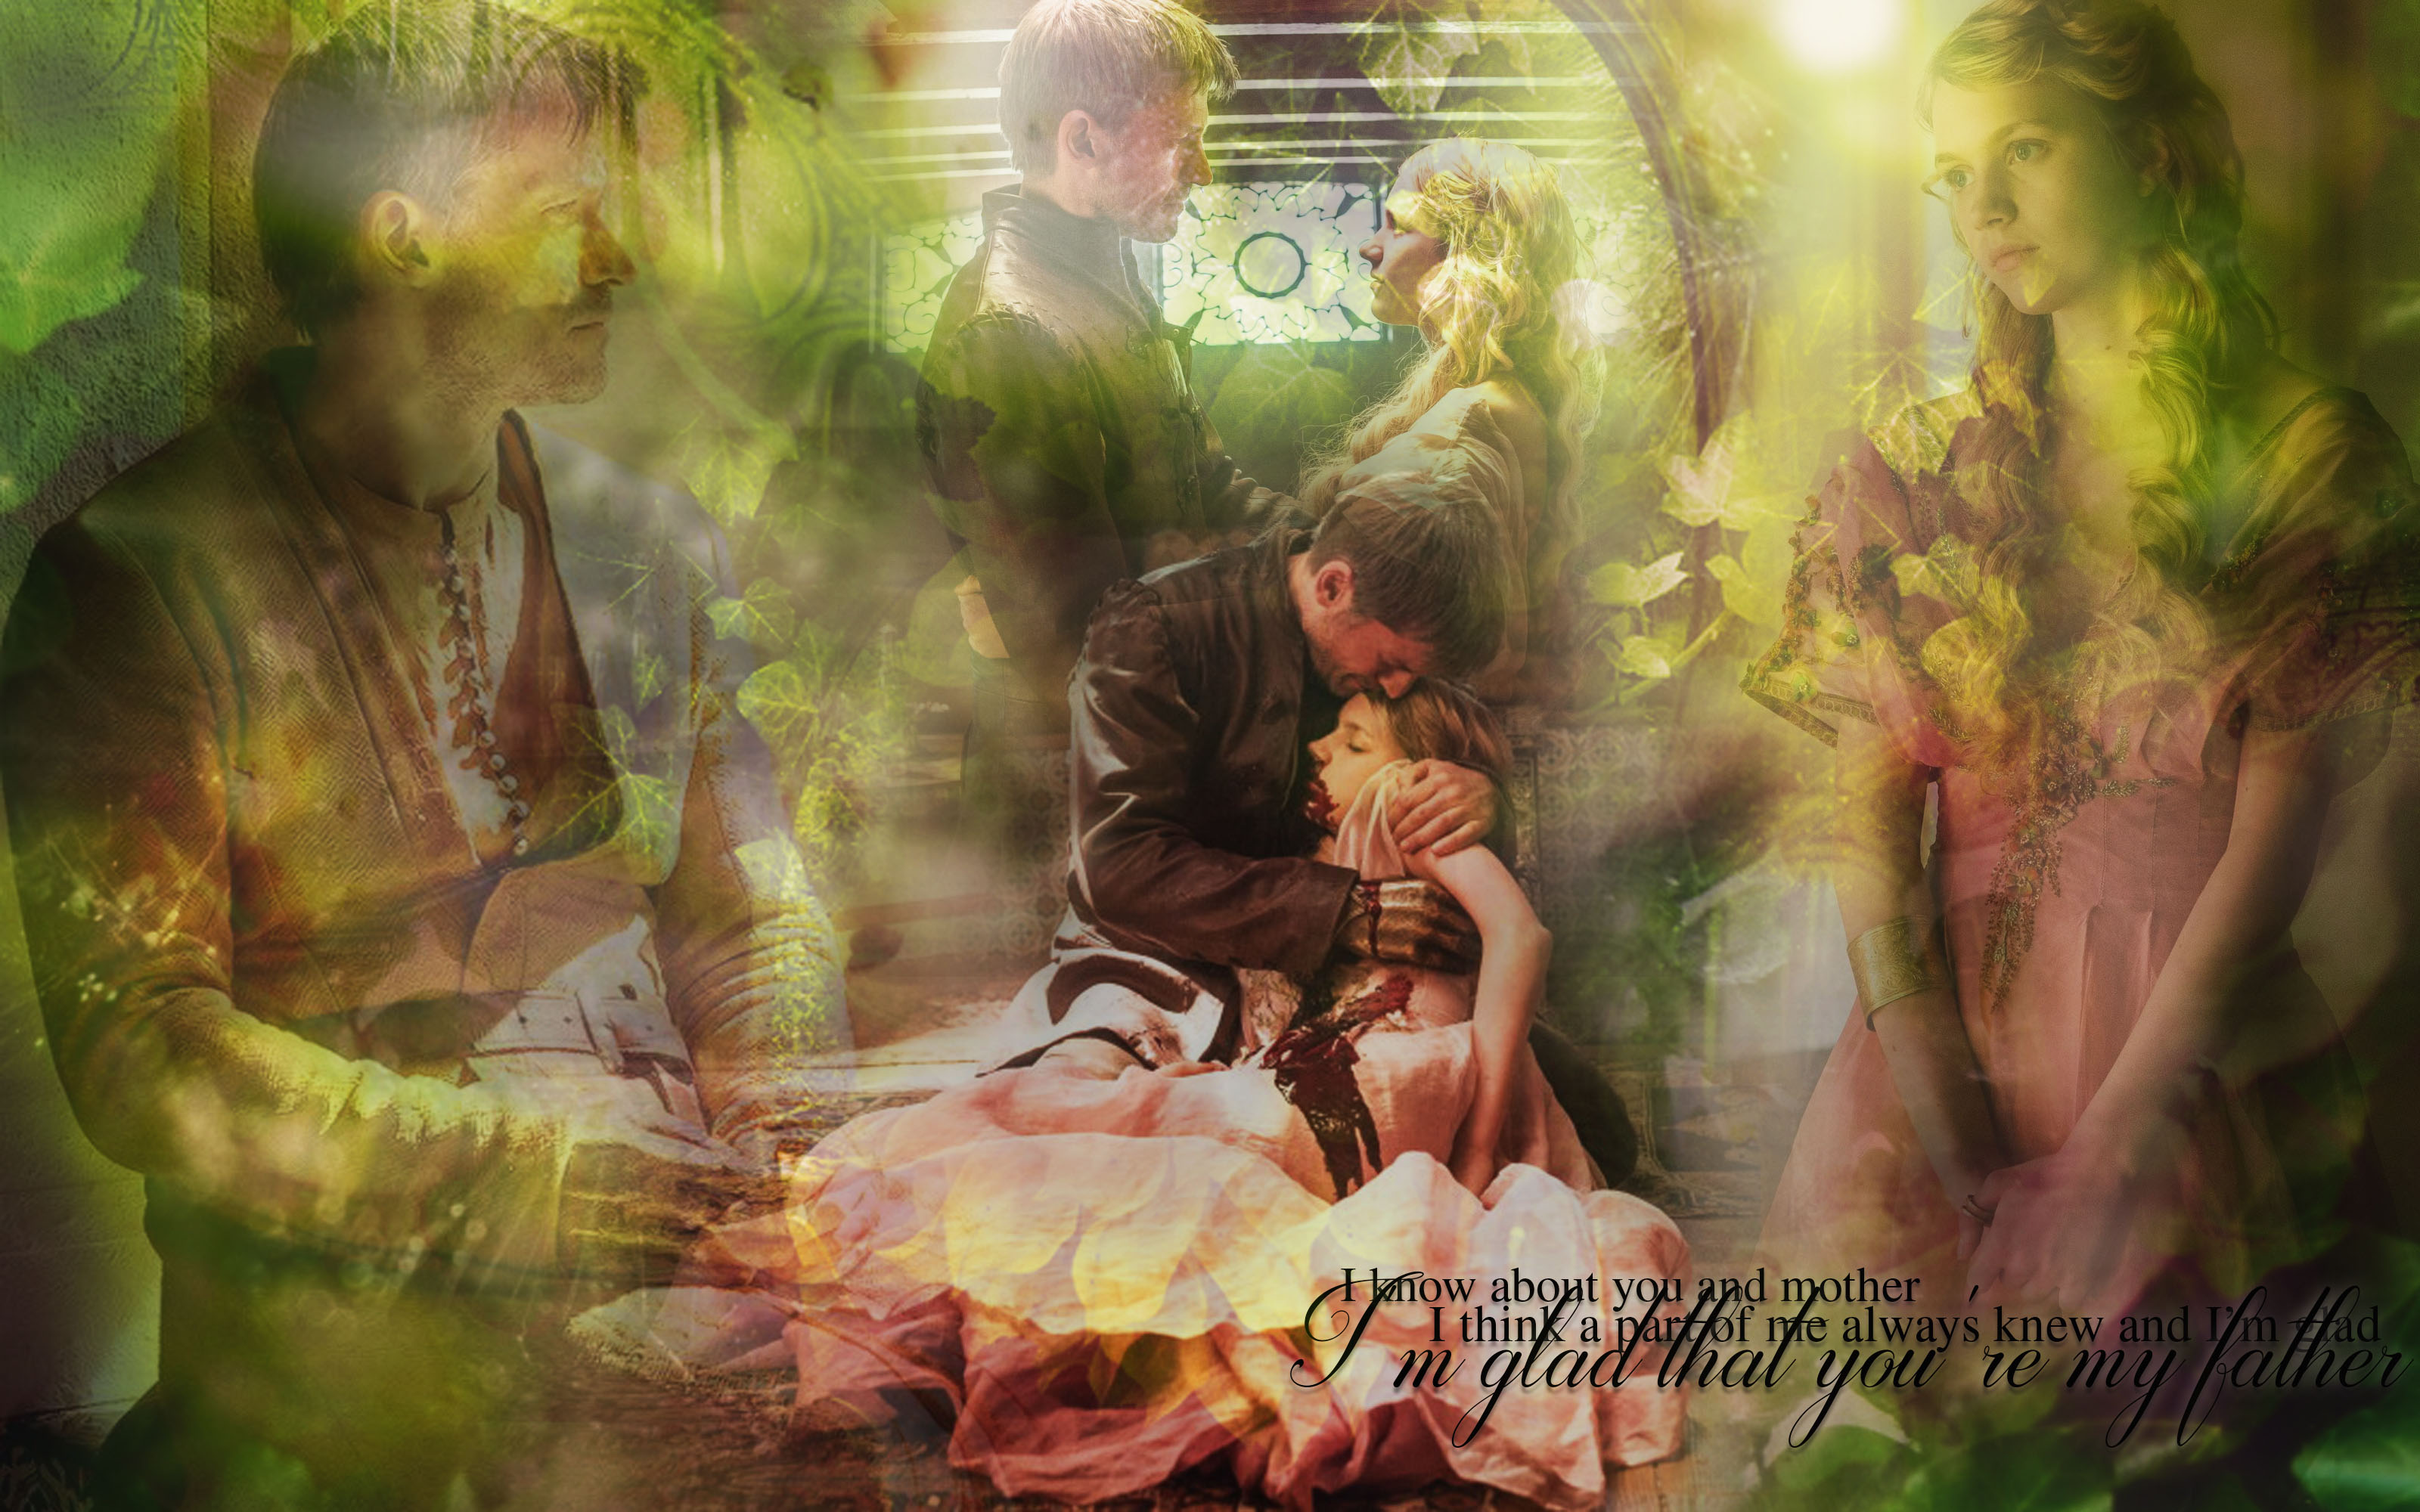 Jaime Lannister and Myrcella Baratheon